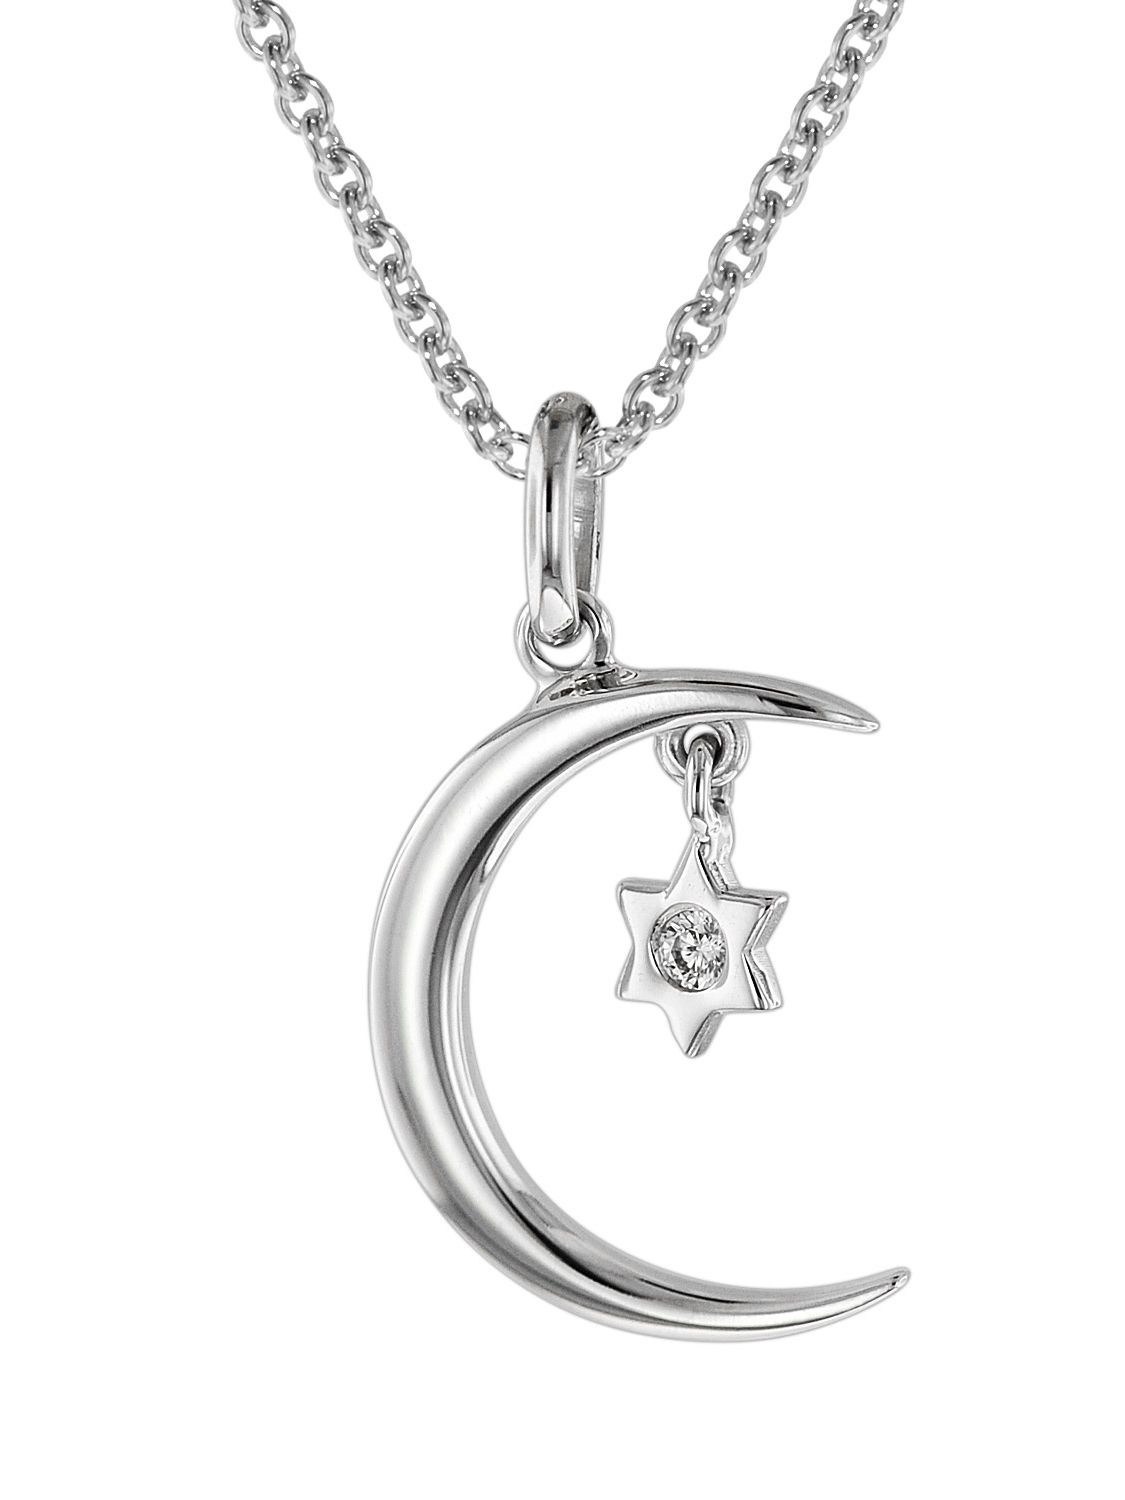 Trendor 75016 Necklace Crescent Moon And Star 925 Silver With Regard To Latest Polished Moon & Star Pendant Necklaces (View 3 of 25)